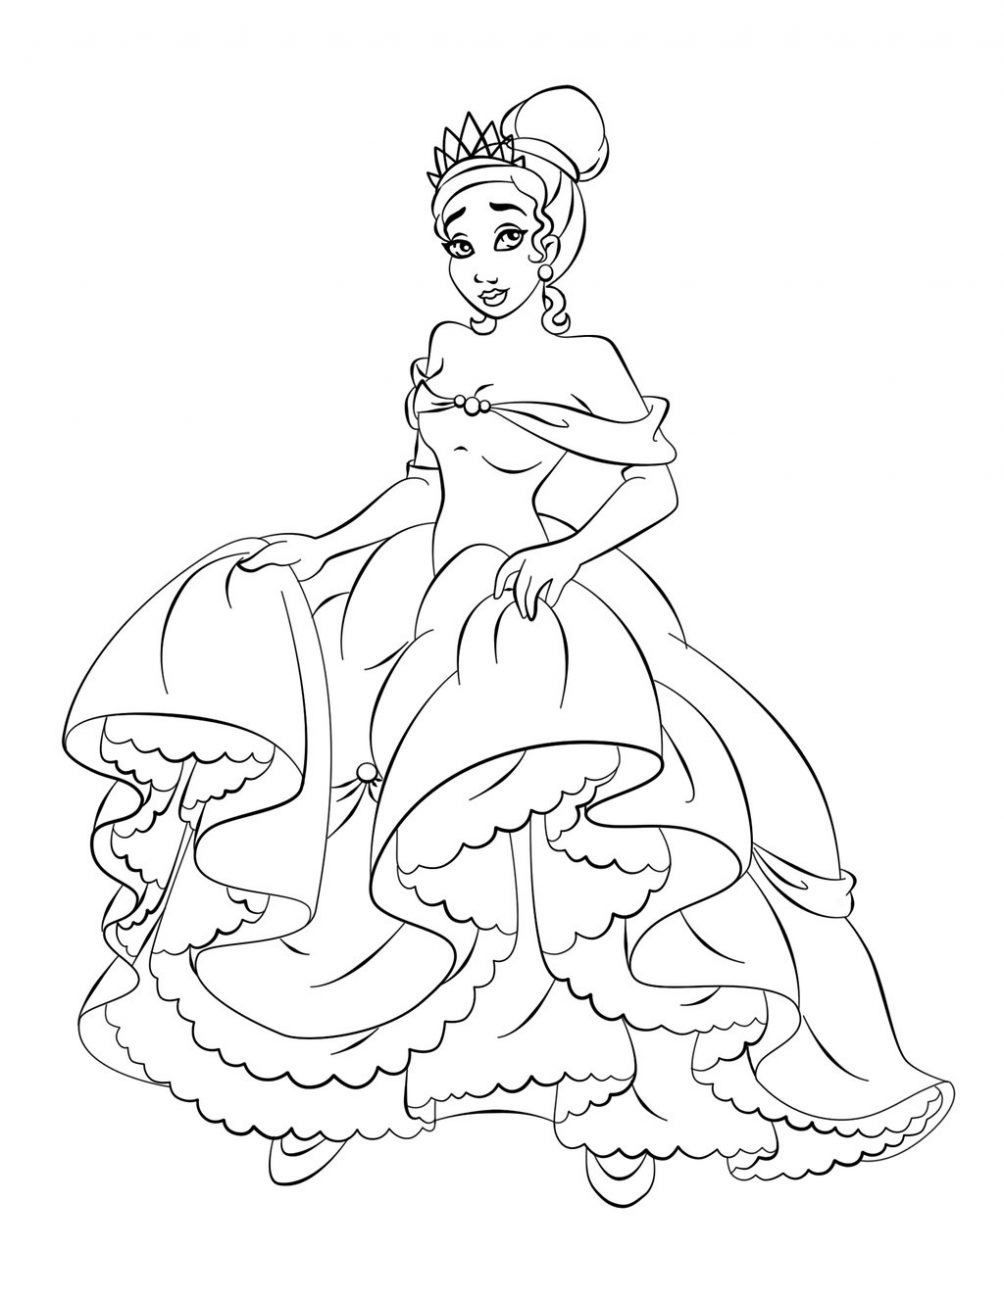 LAMINAS PARA COLOREAR - COLORING PAGESDisney Princess And The Frog Coloring Pages